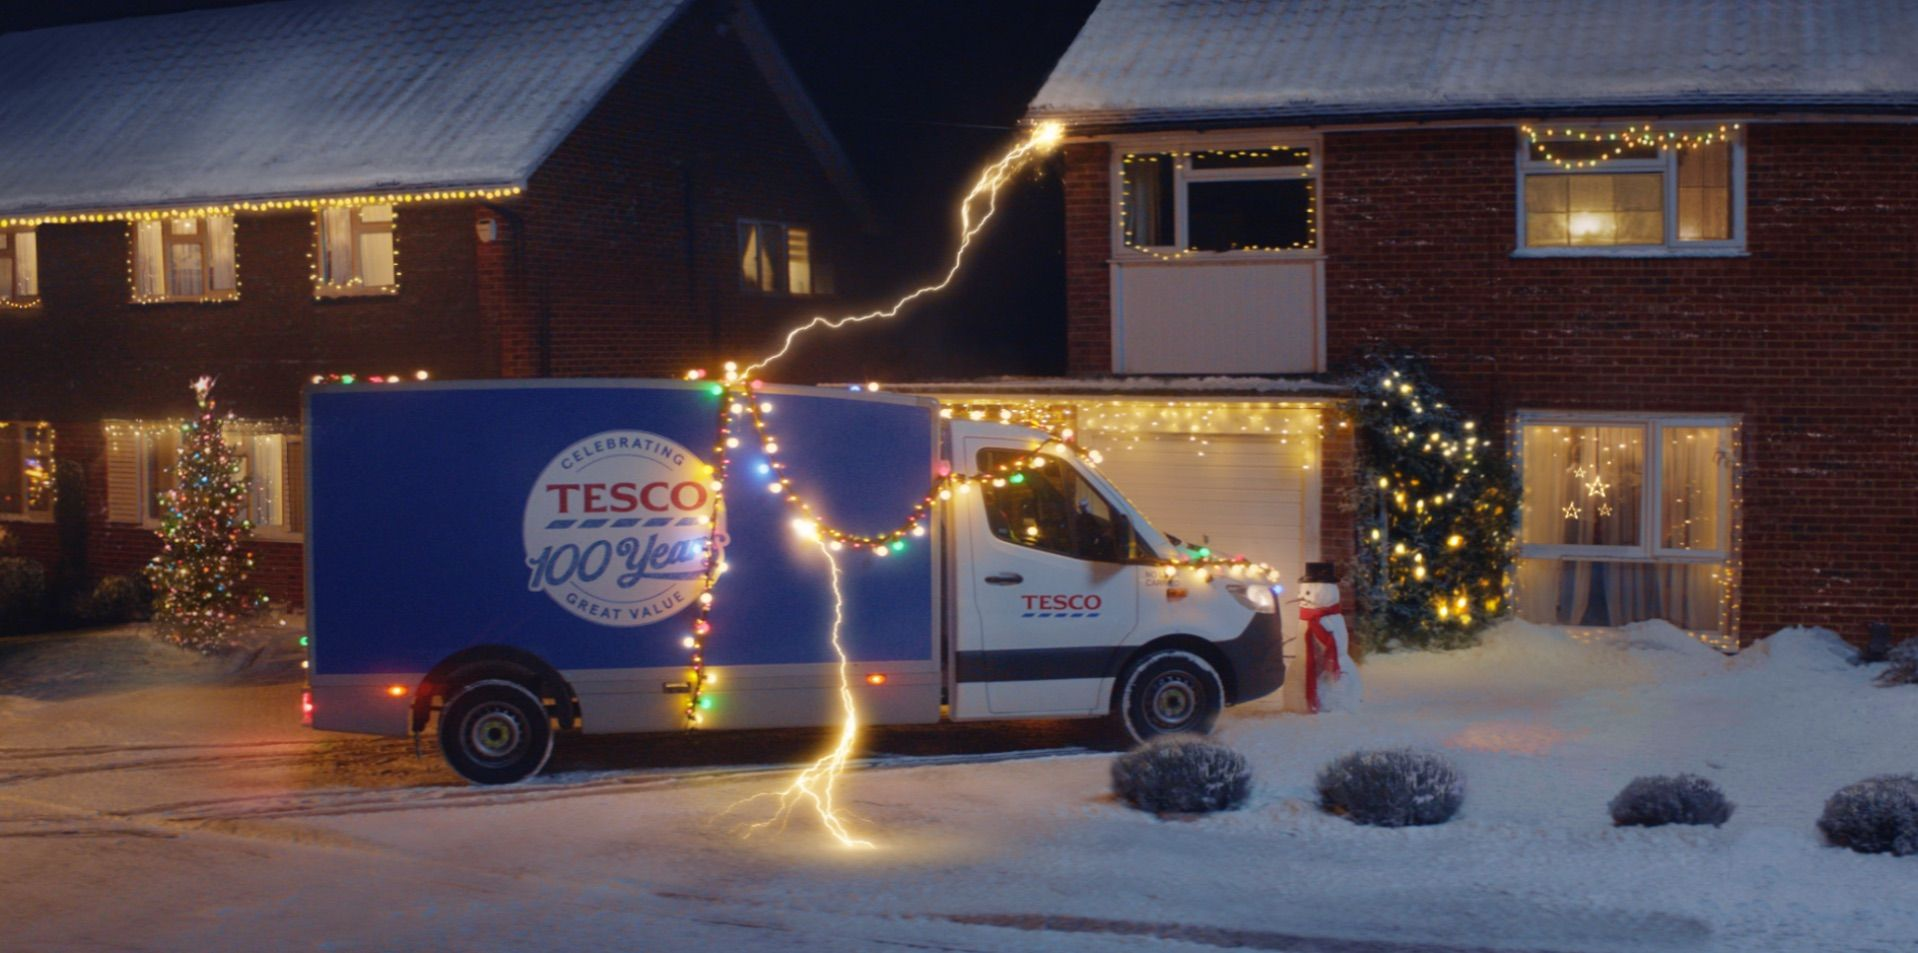 Tesco Christmas advert 2019: first look at Back to the Future-inspired advert